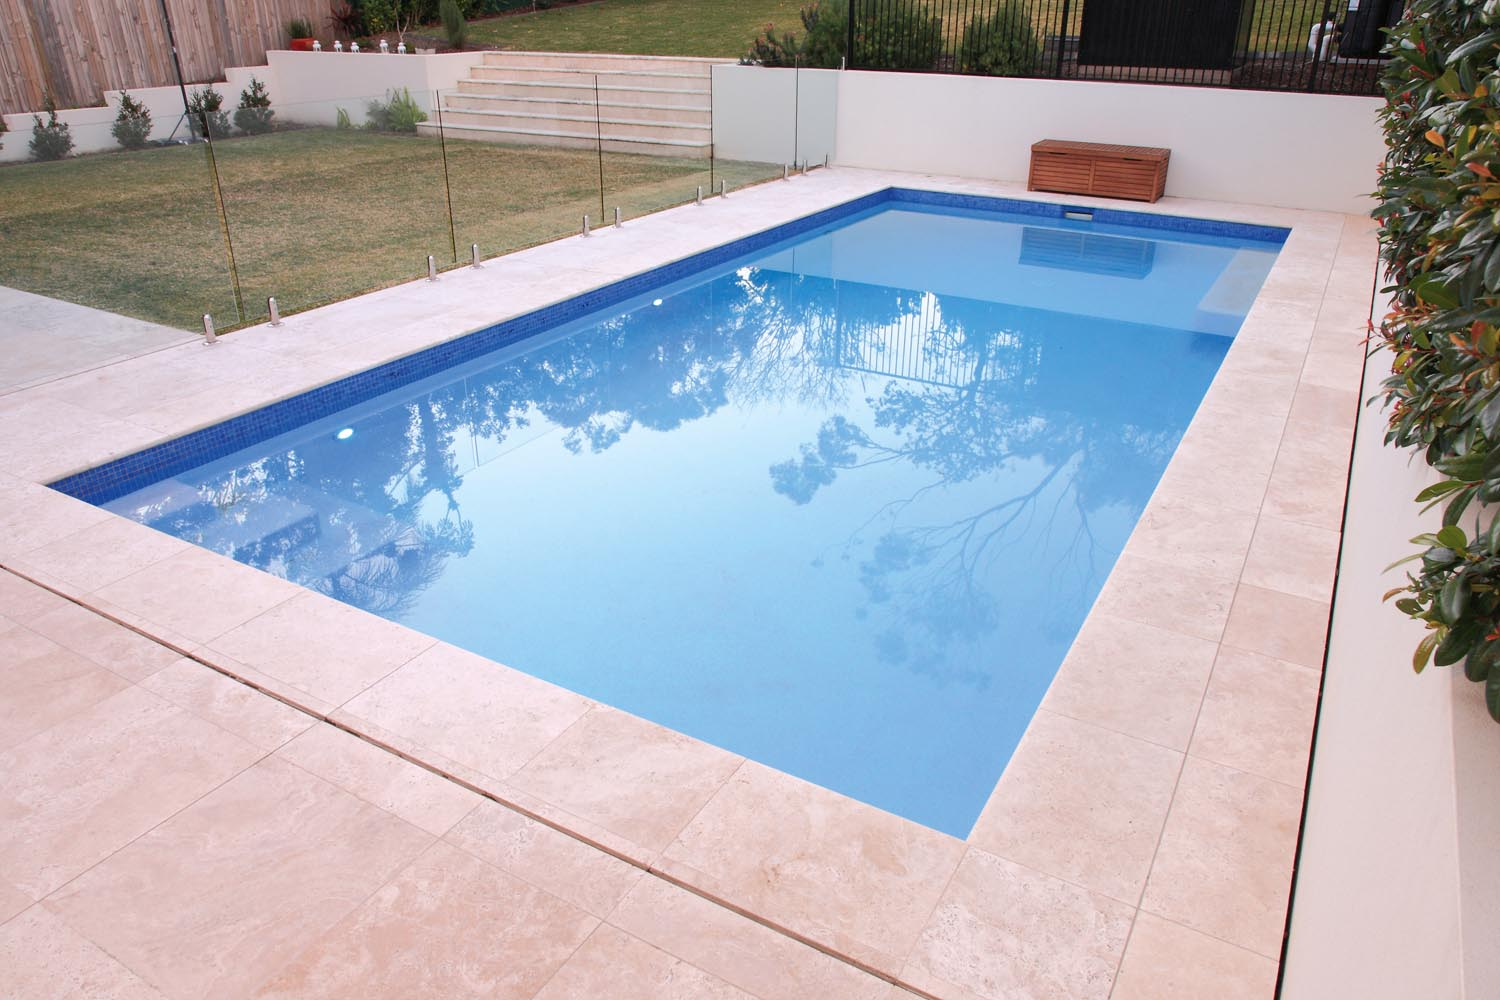 Simple and clean pool design